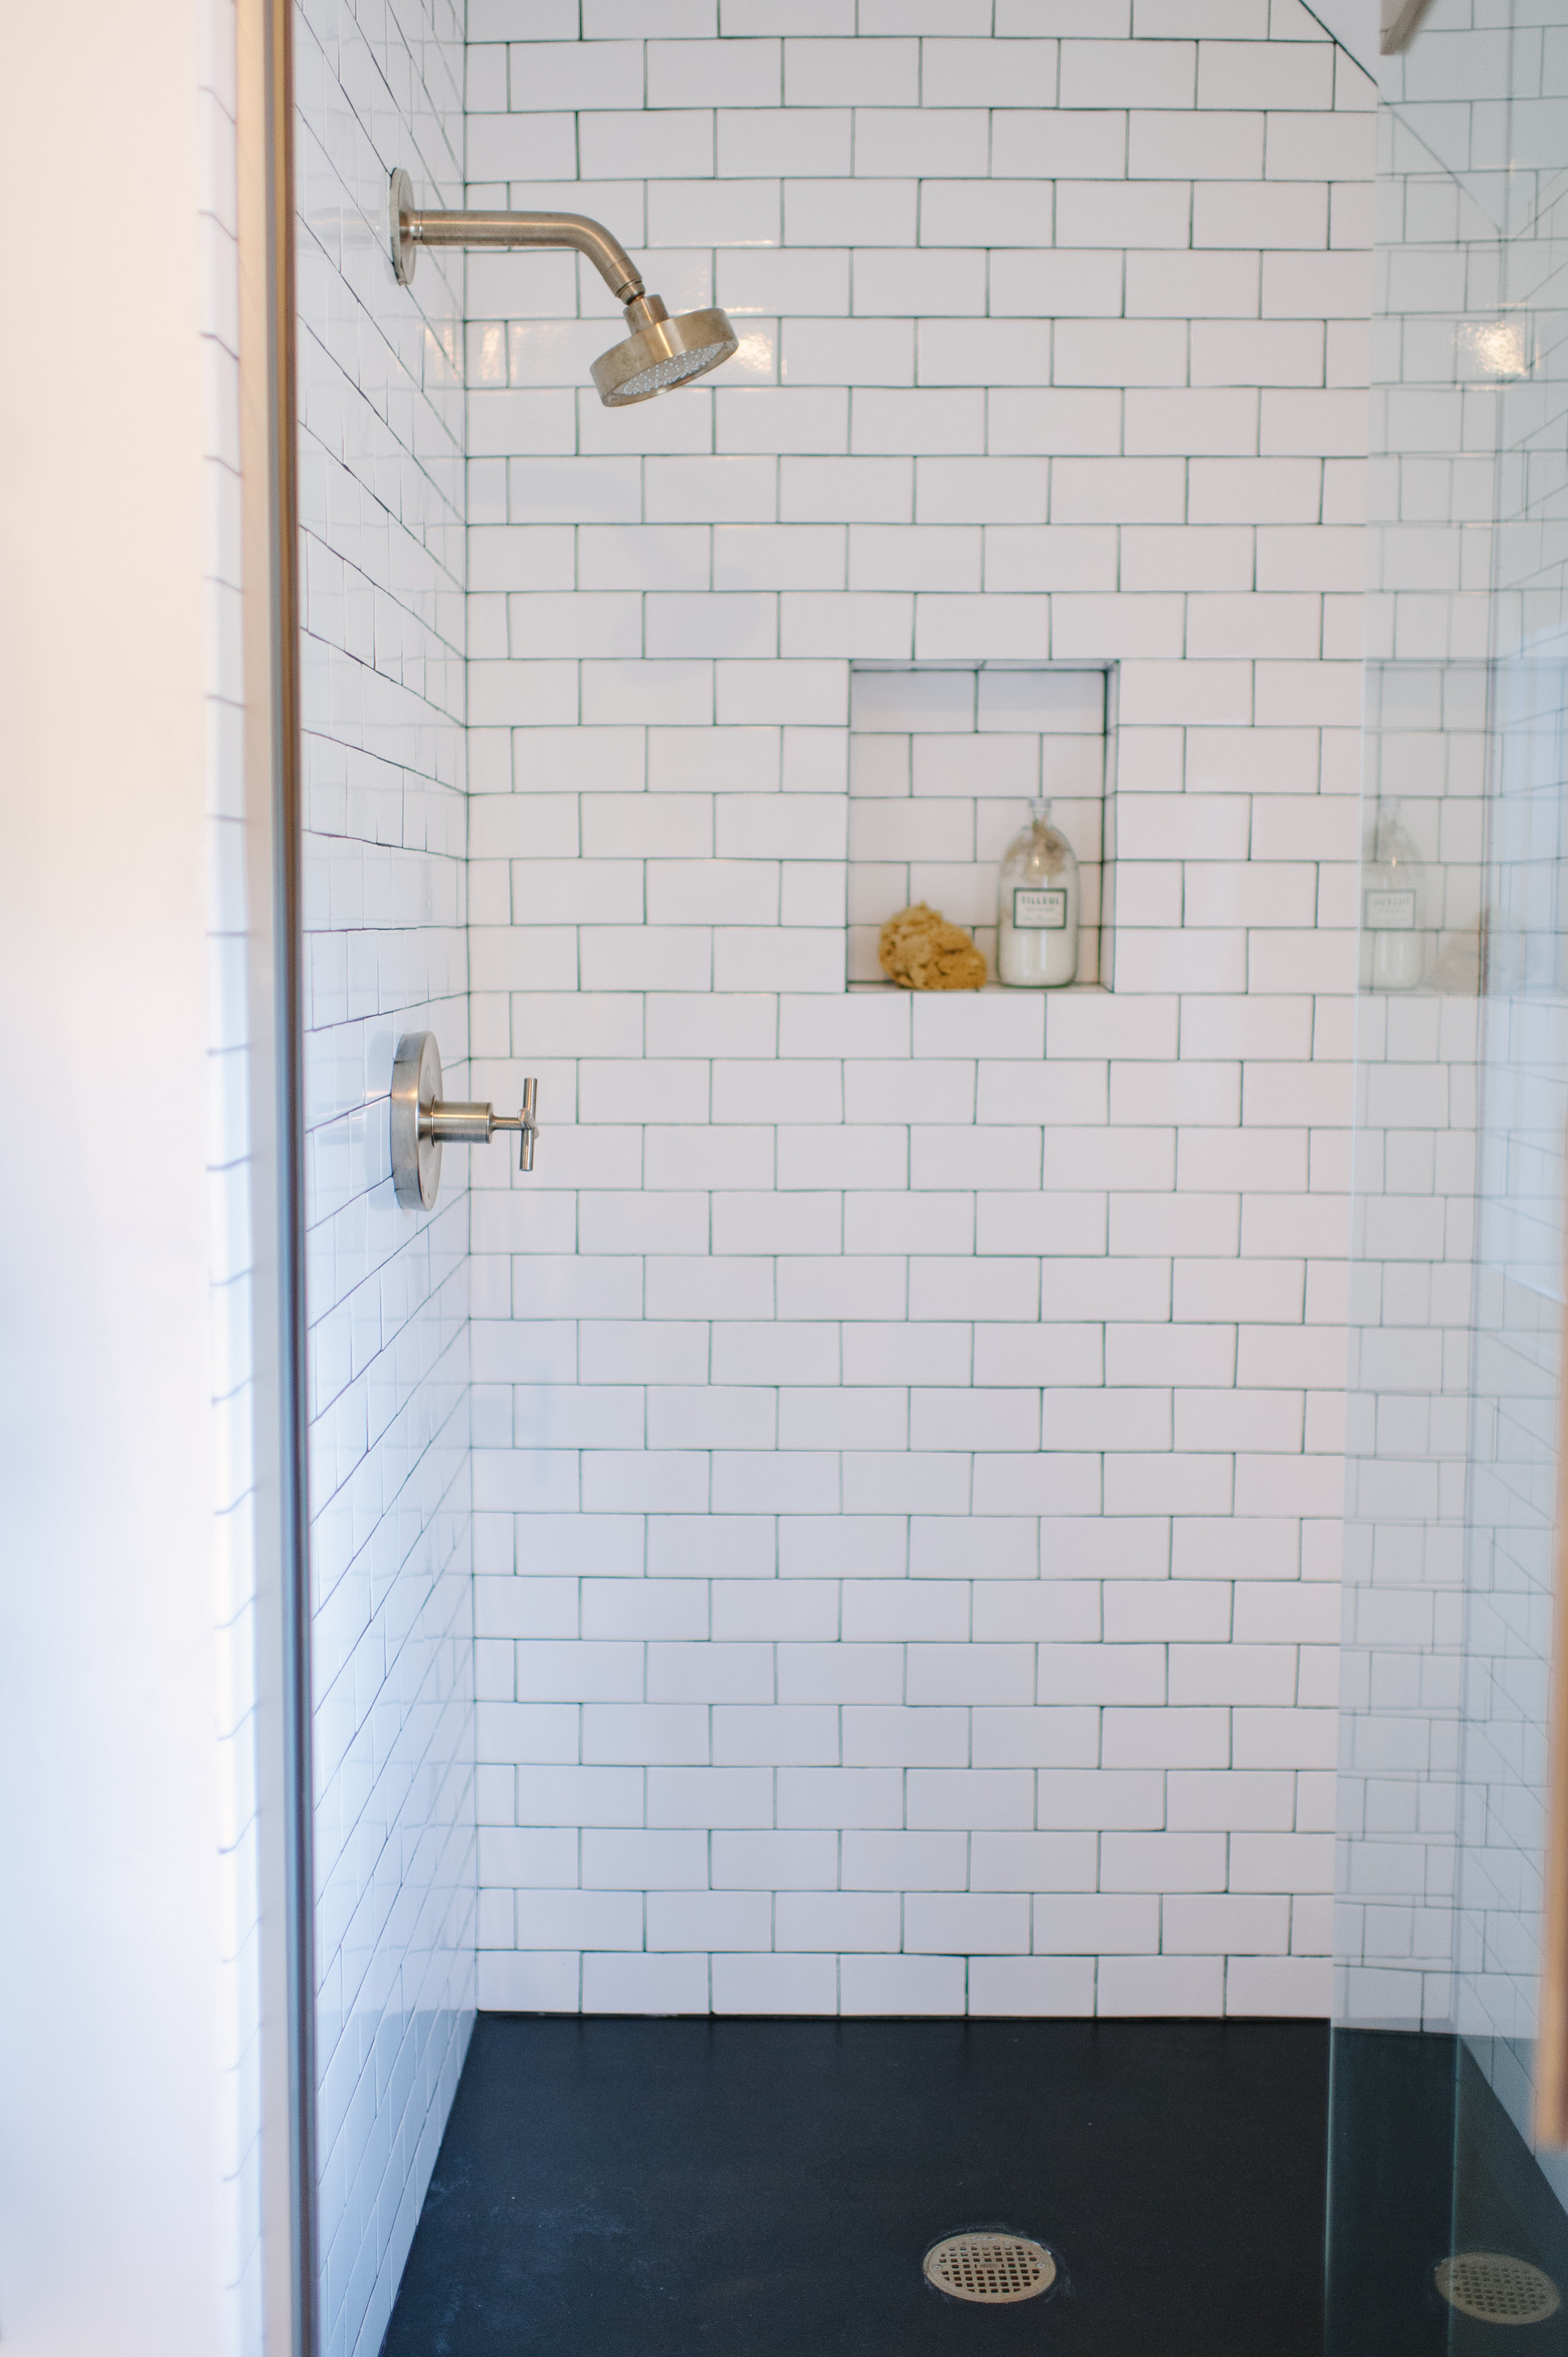 Purist showerhead and trim    Lewis paired a bronze finish on the shower components to glam up the classic white tile in the guest shower.